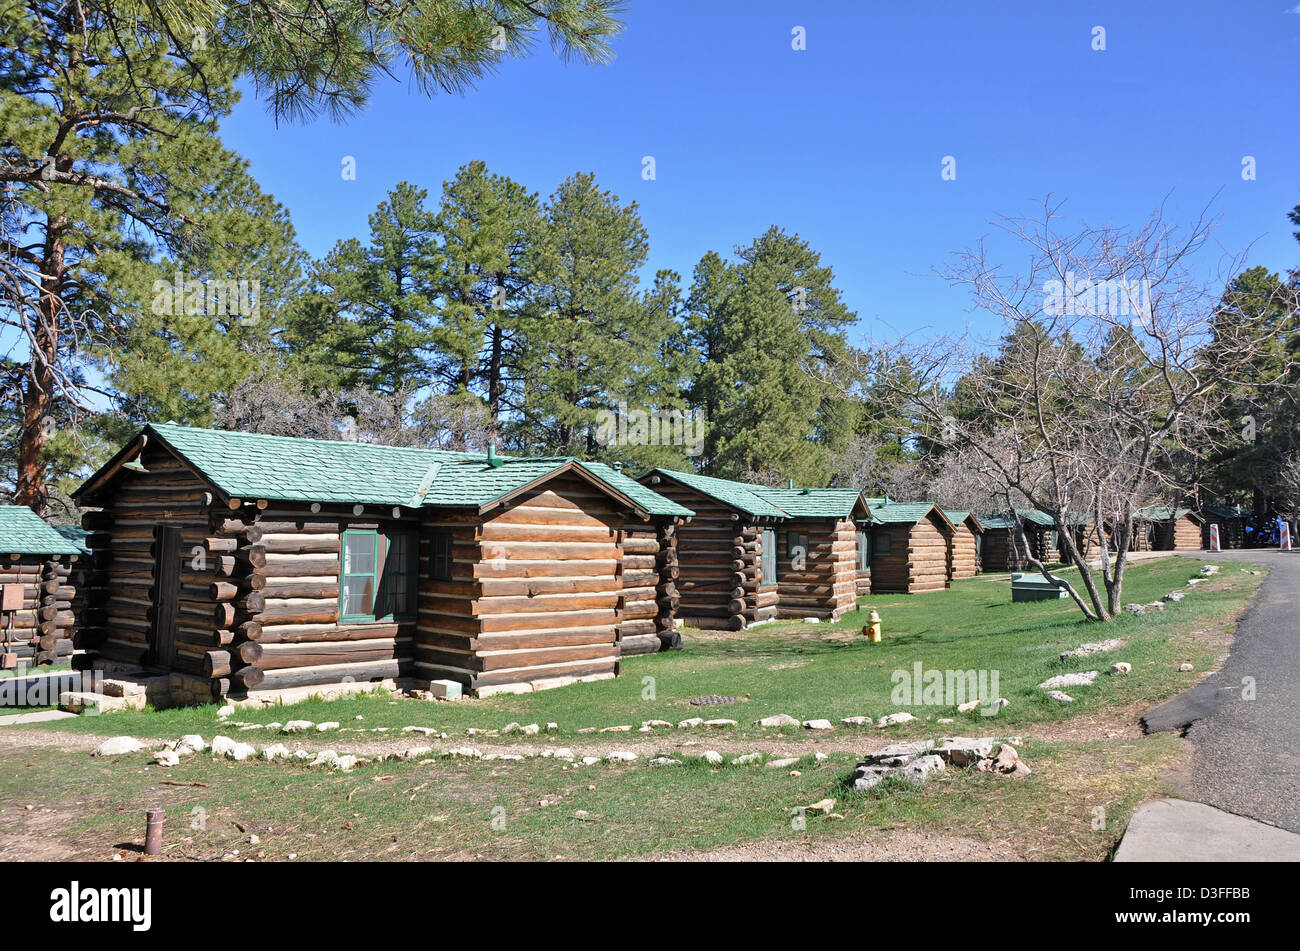 rim canceled partial heading bath got north the cabins just in two re western of south grand we private gas fireplace and a on beds queen canyon focusing to duplex someone with travel were fridge cabin view